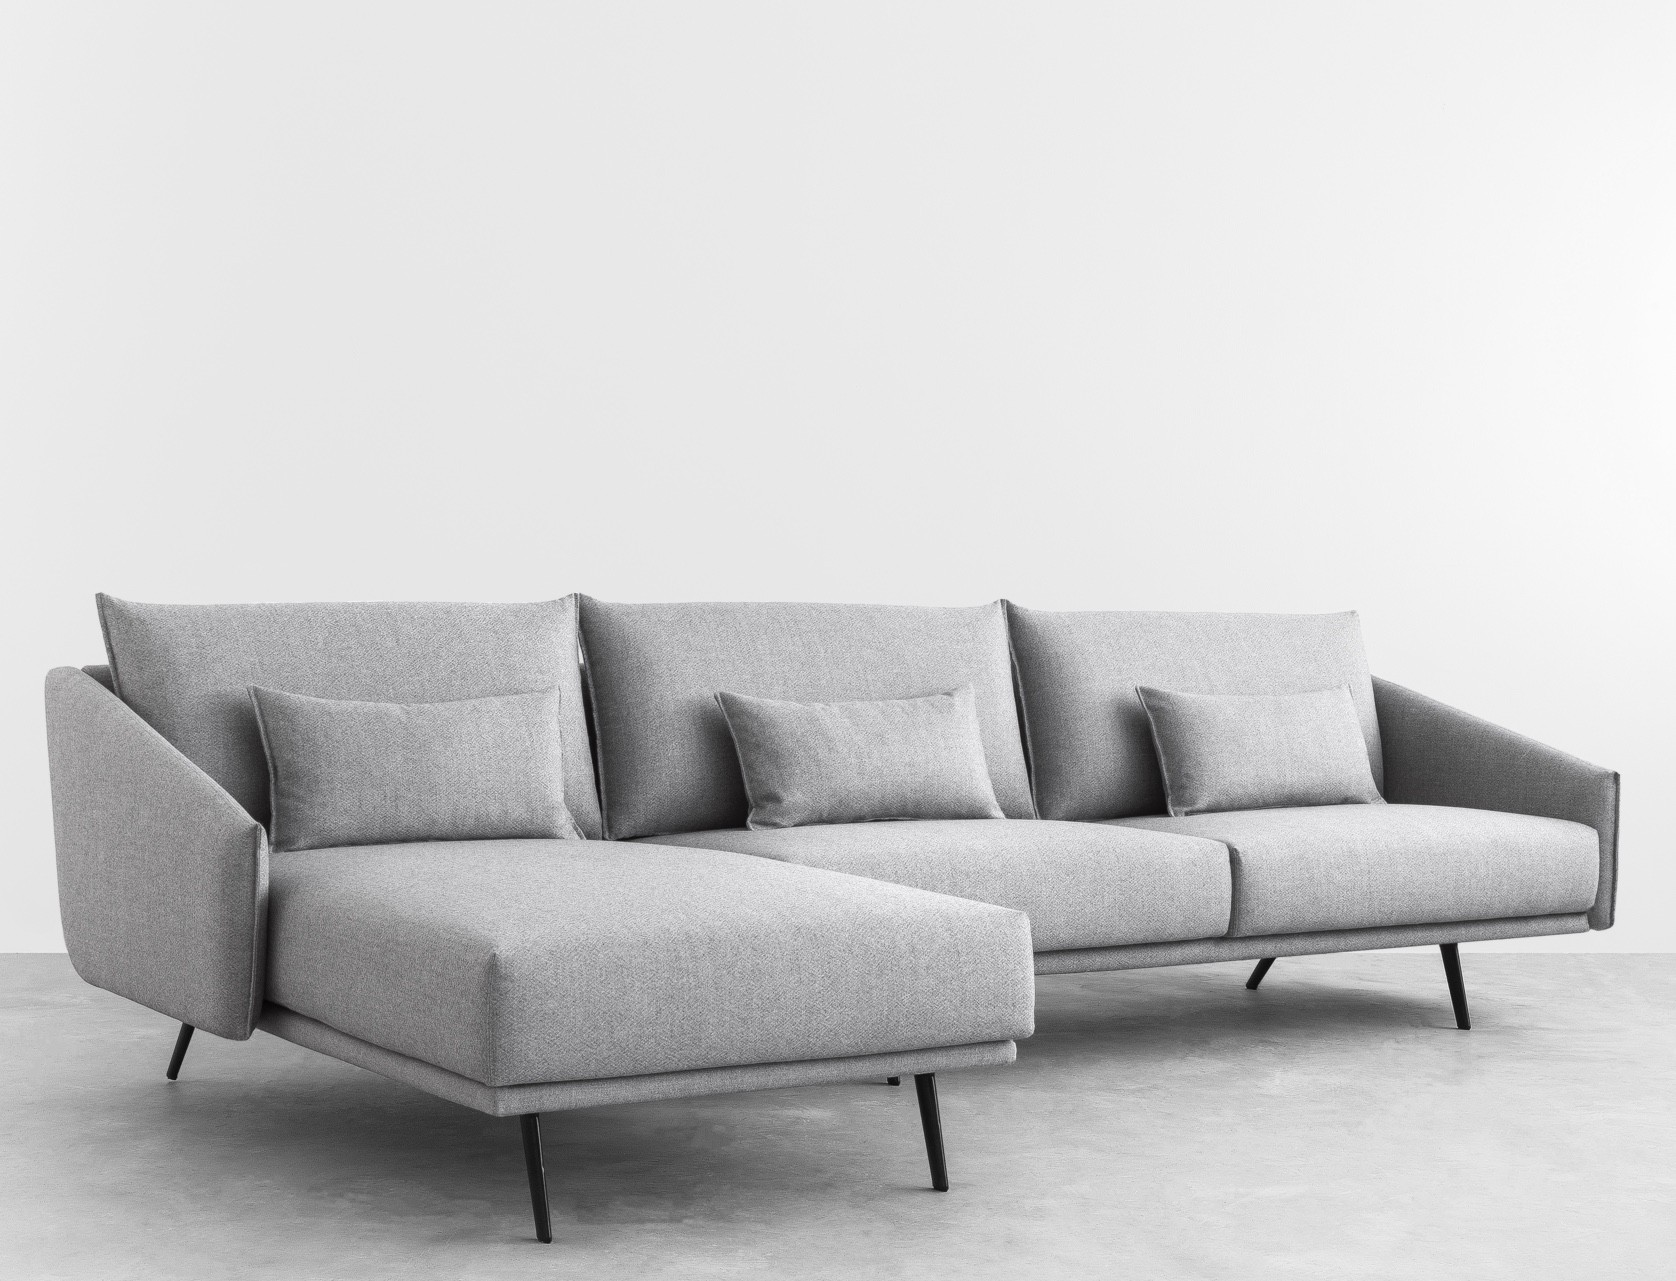 chaise longue sofa modern chaise longue sofas quality from boconcept thesofa. Black Bedroom Furniture Sets. Home Design Ideas